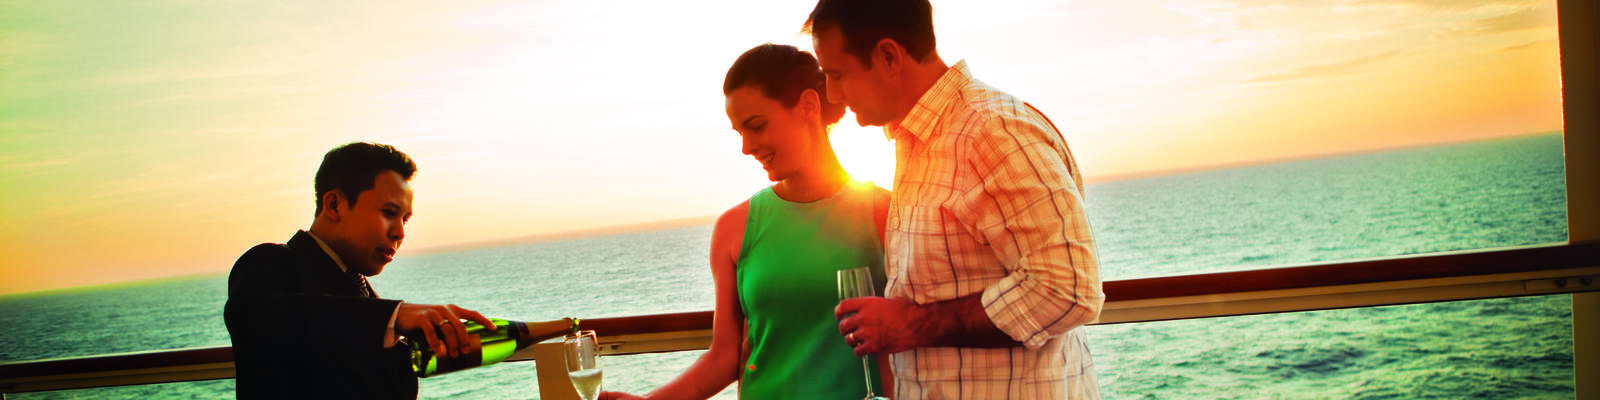 Butler service on a Norwegian cruise (Photo: Norwegian Cruise Line)